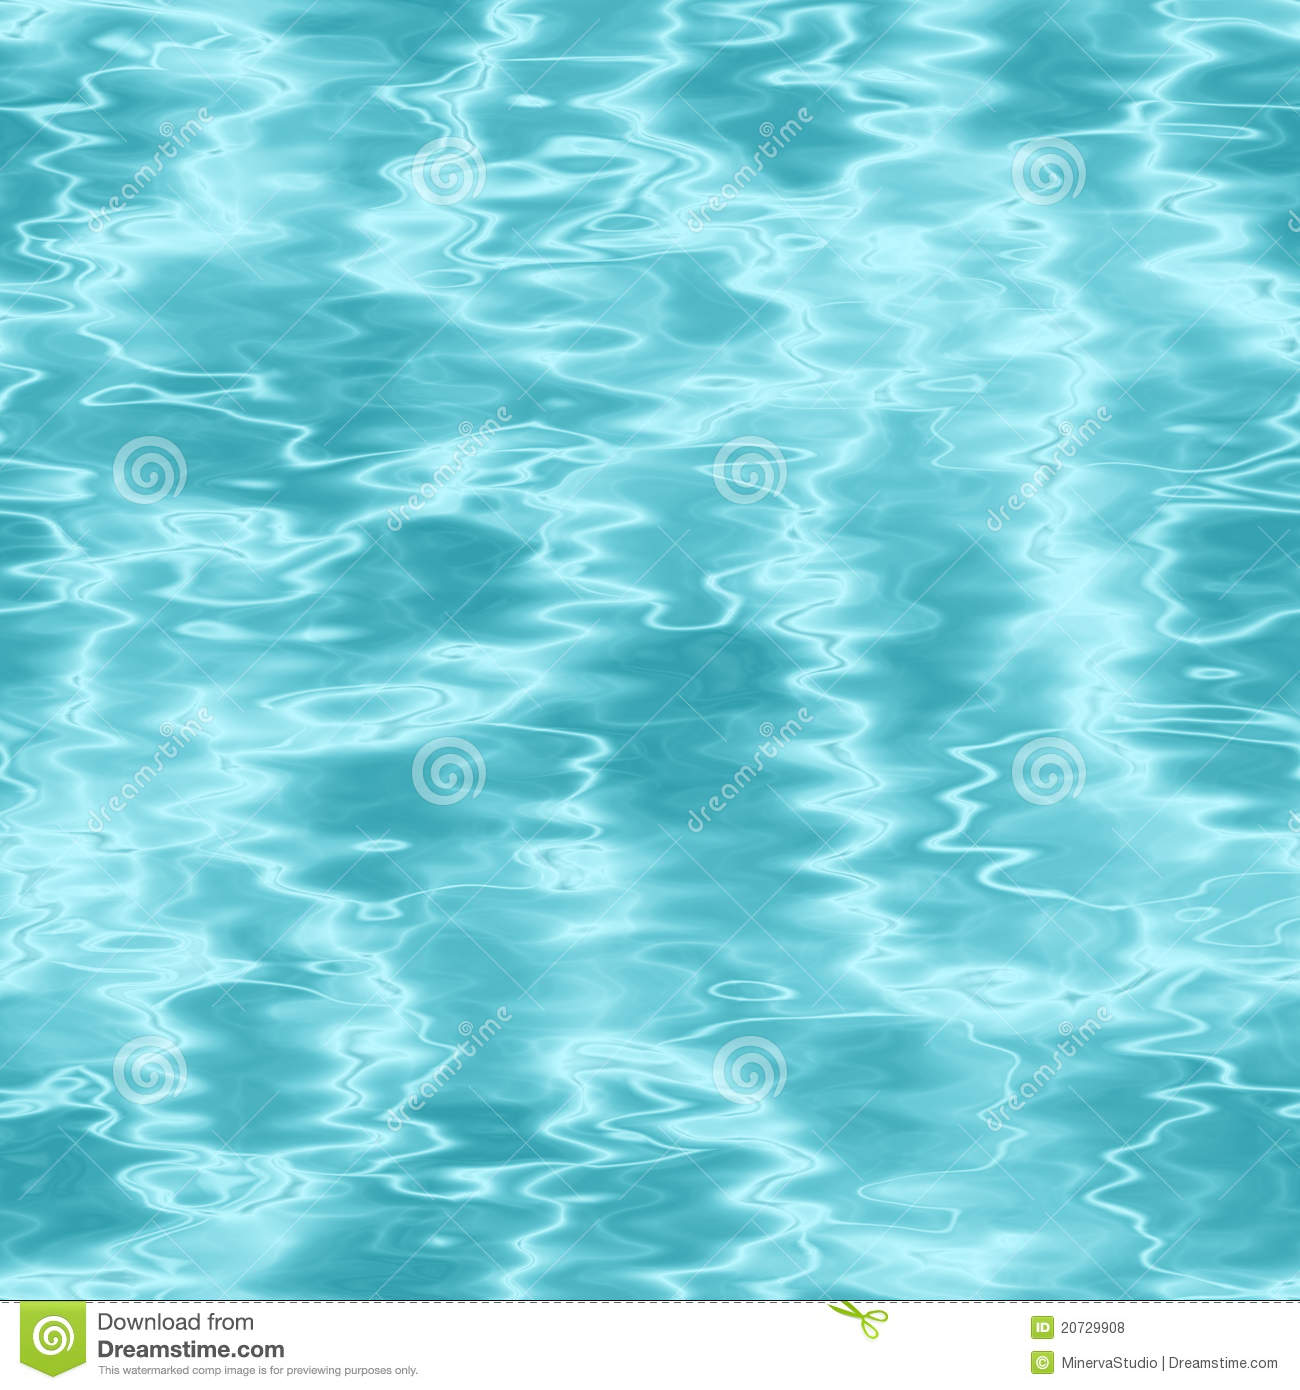 Seamless Water Texture seamless water texture royalty free stock photos - image: 20729908